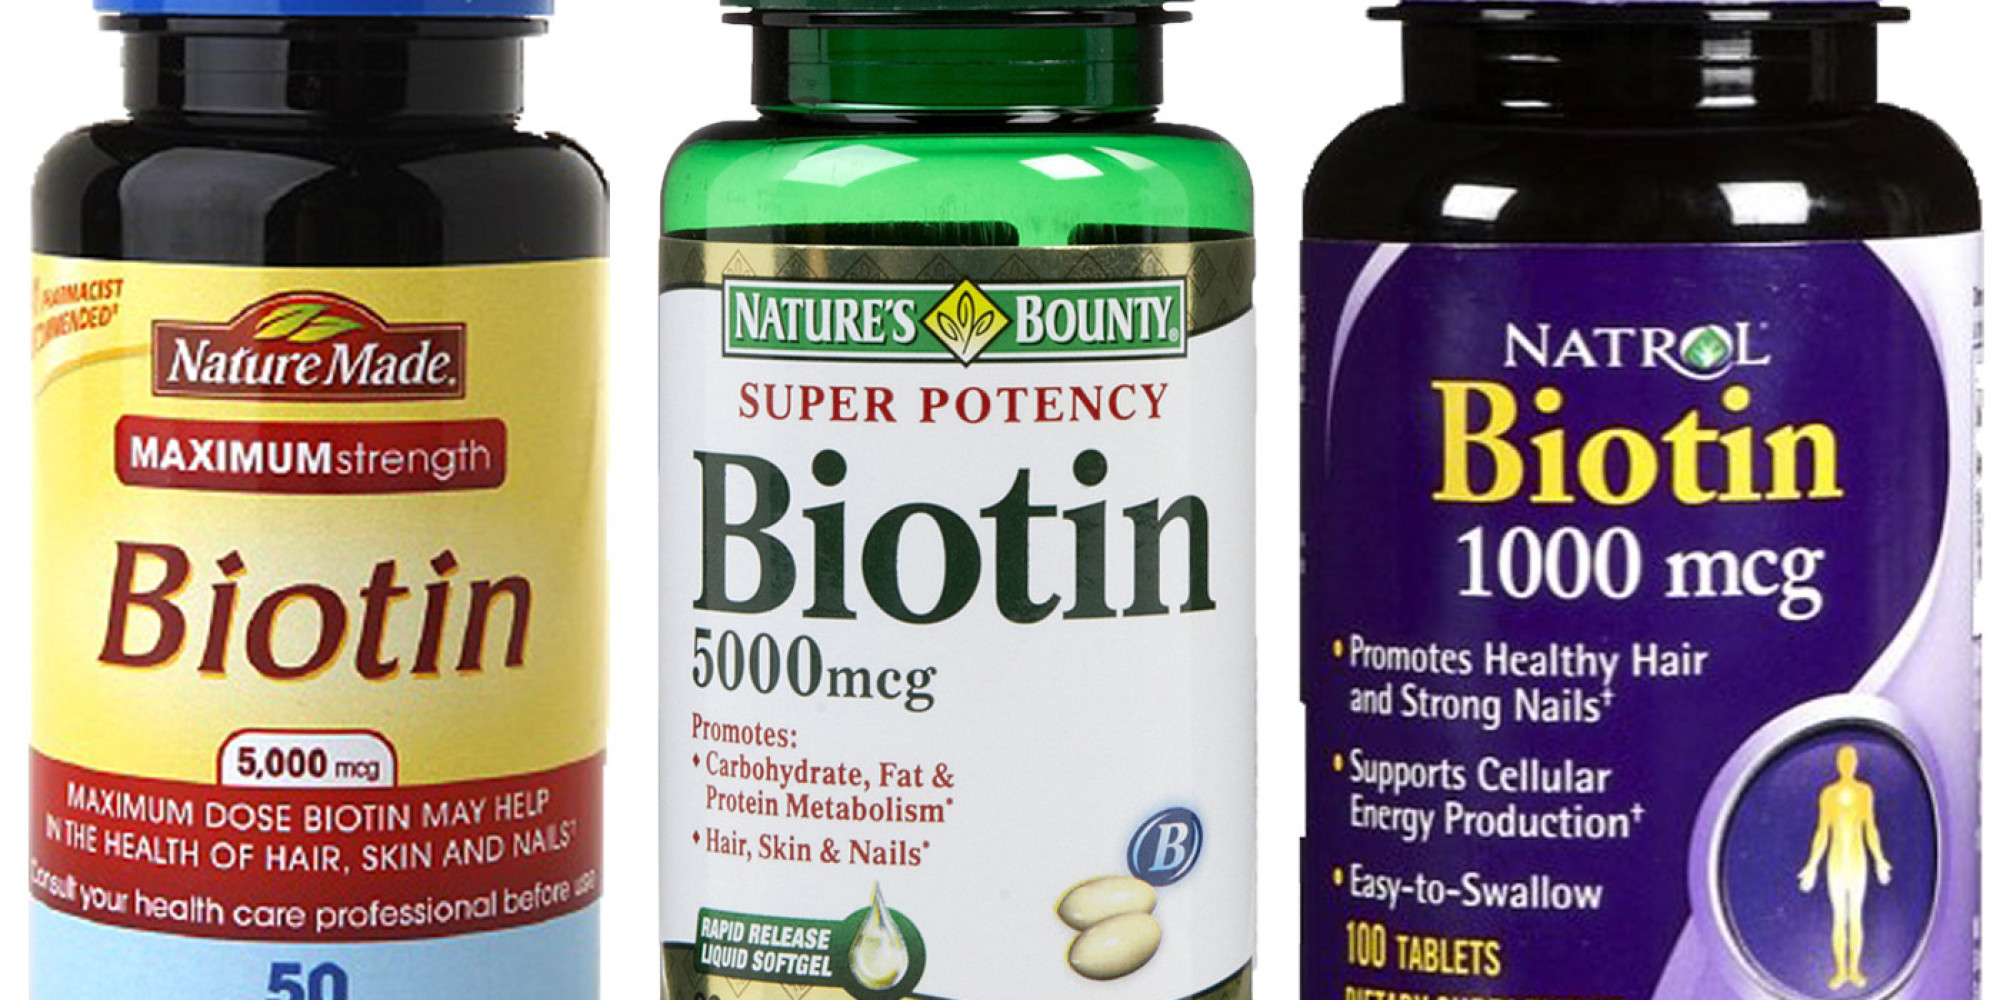 Why You Should Be Cautious Of Taking Biotin For Your Hair